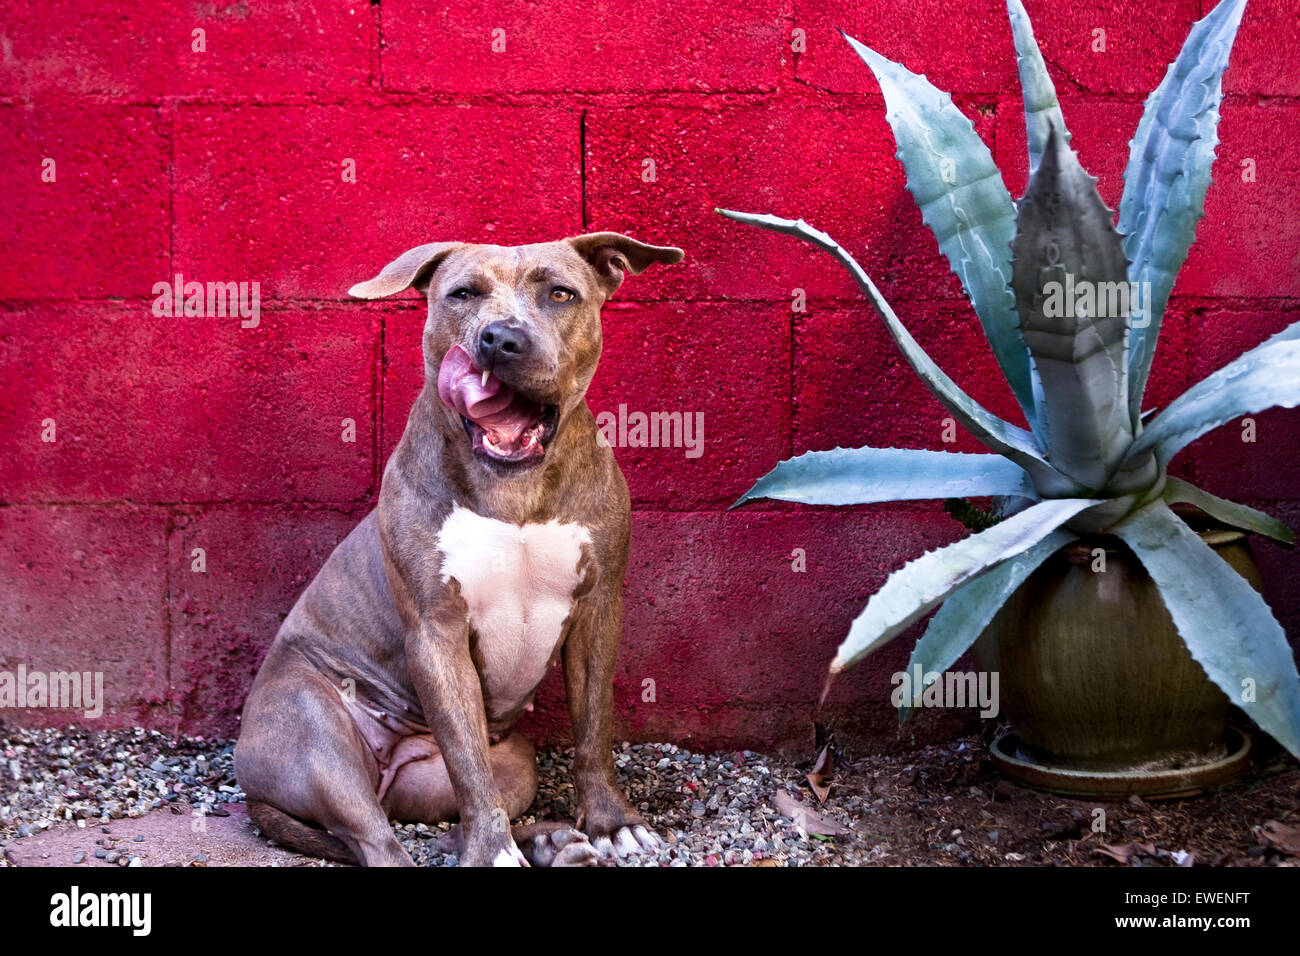 Humorous portrait of pitbull dog sitting against red block wall licking chops next to potted cactus plant - Stock Image